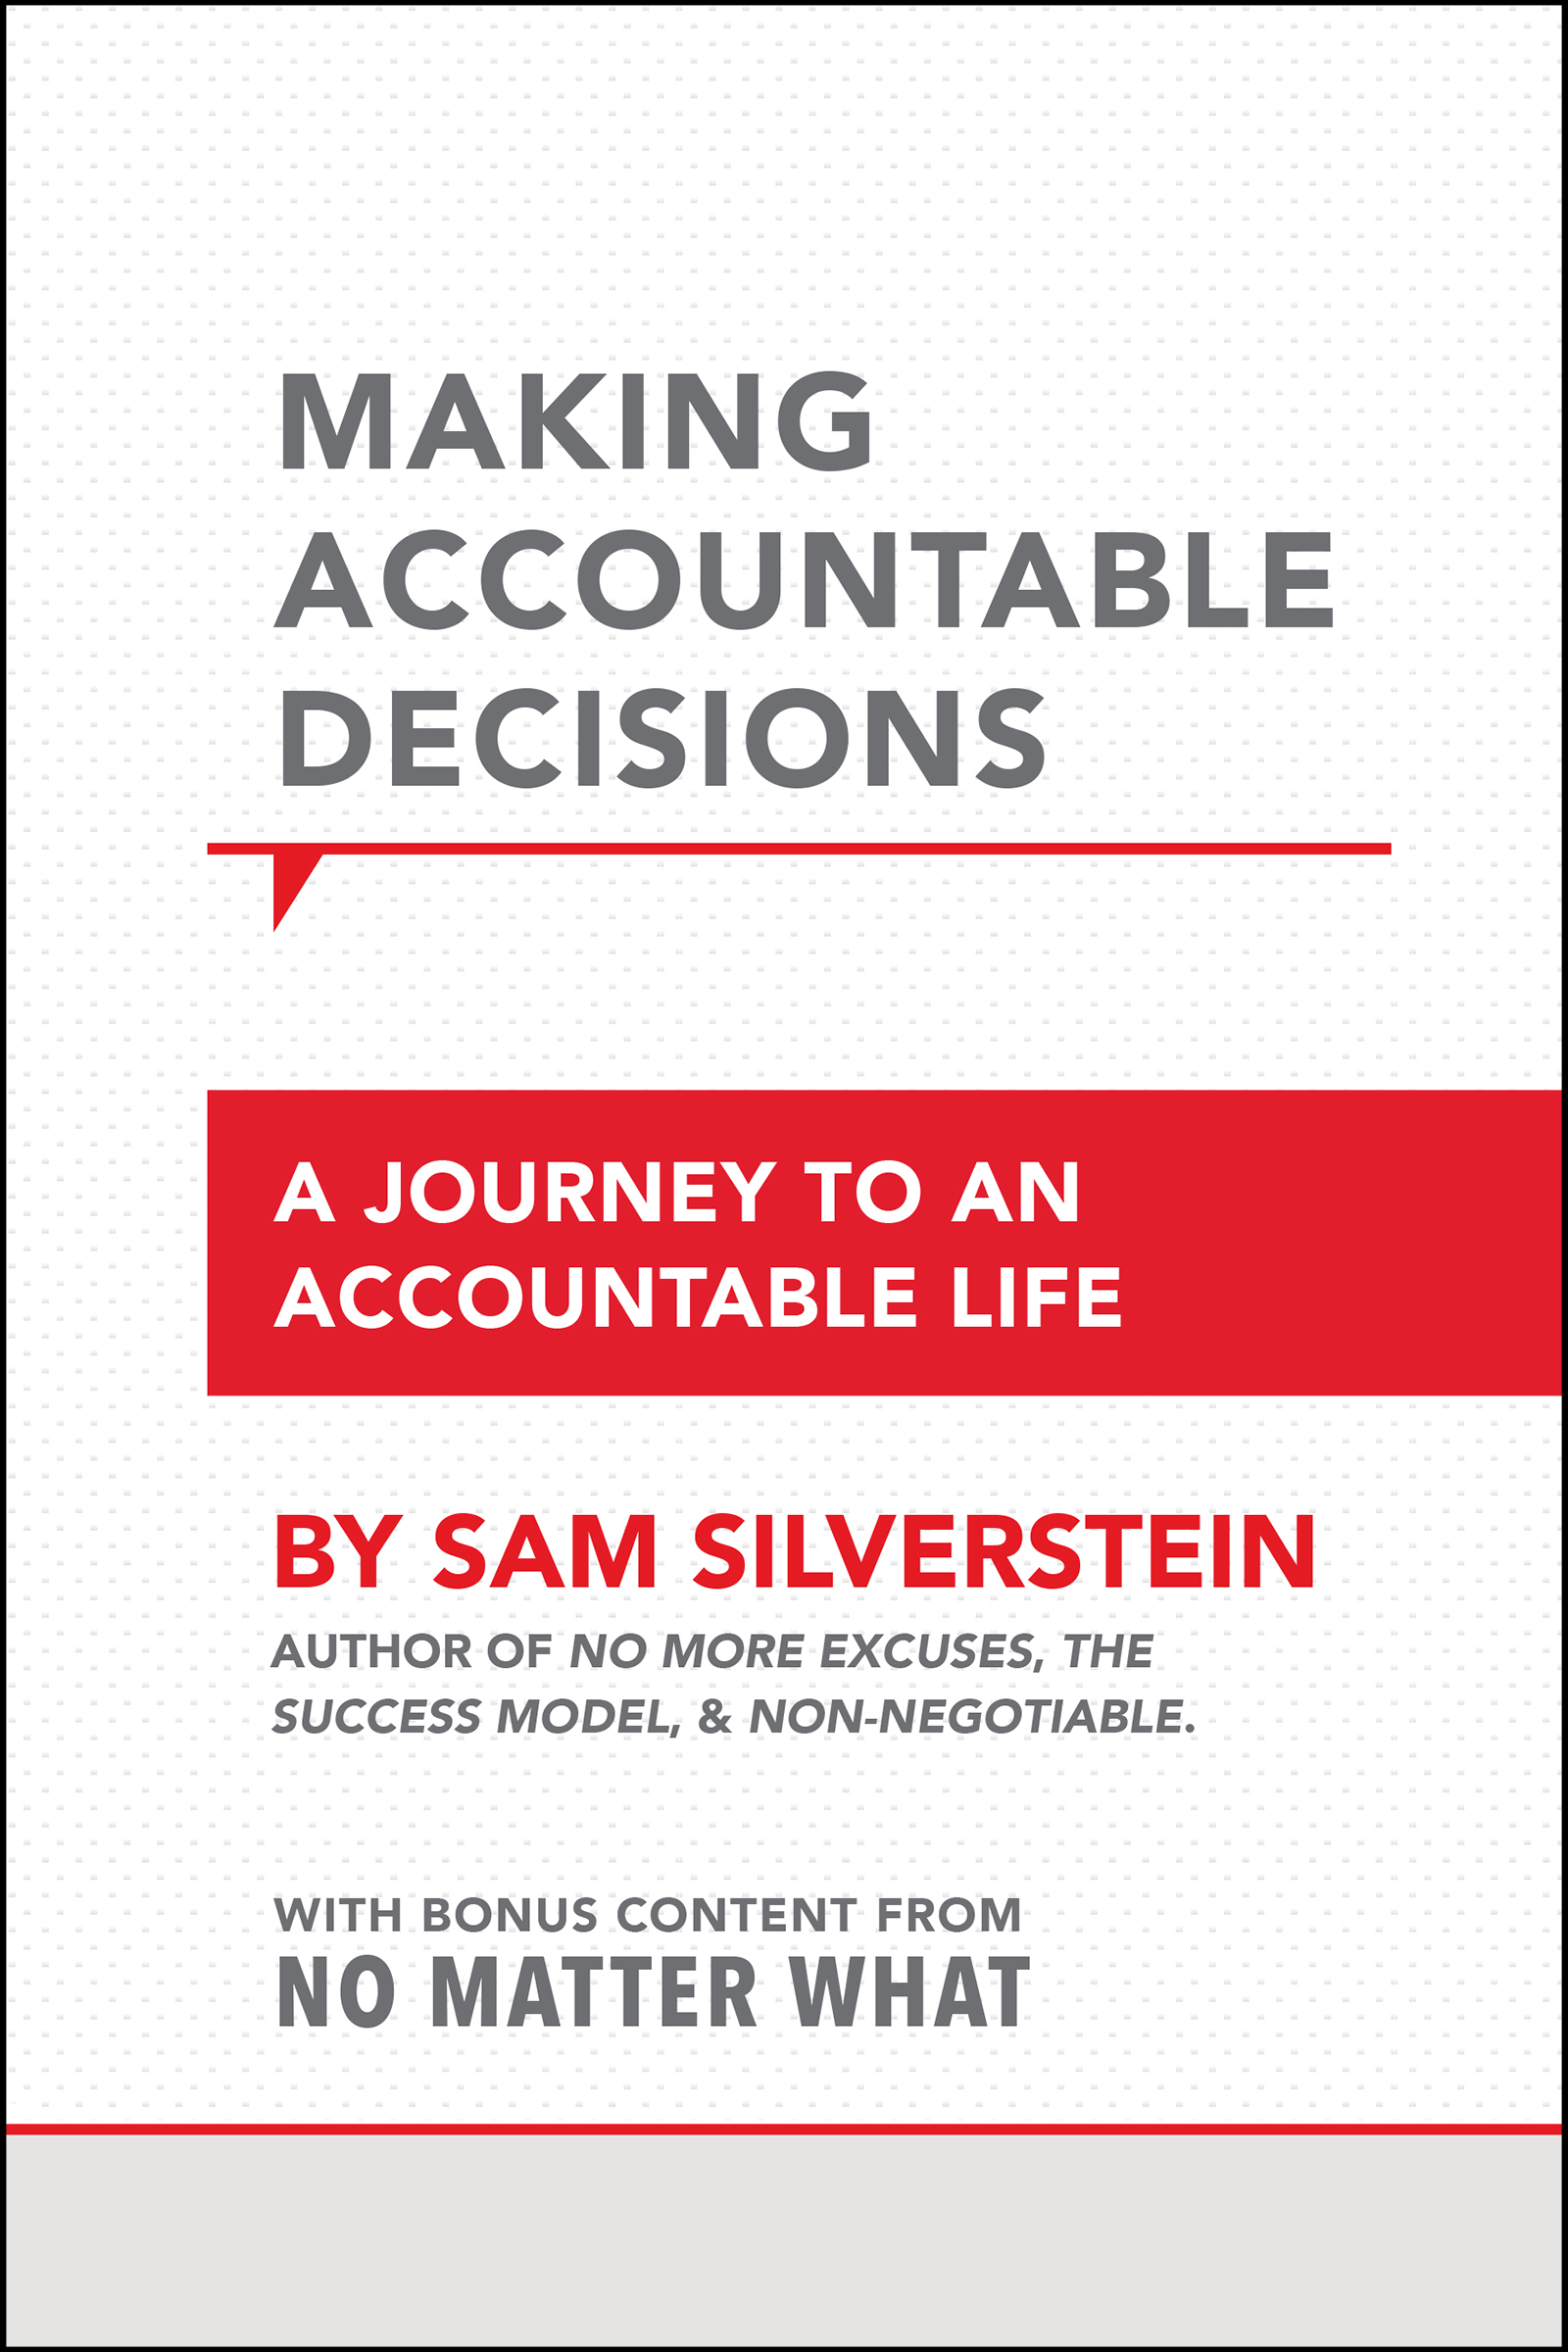 Making Accountable Decisions - Sam Silverstein